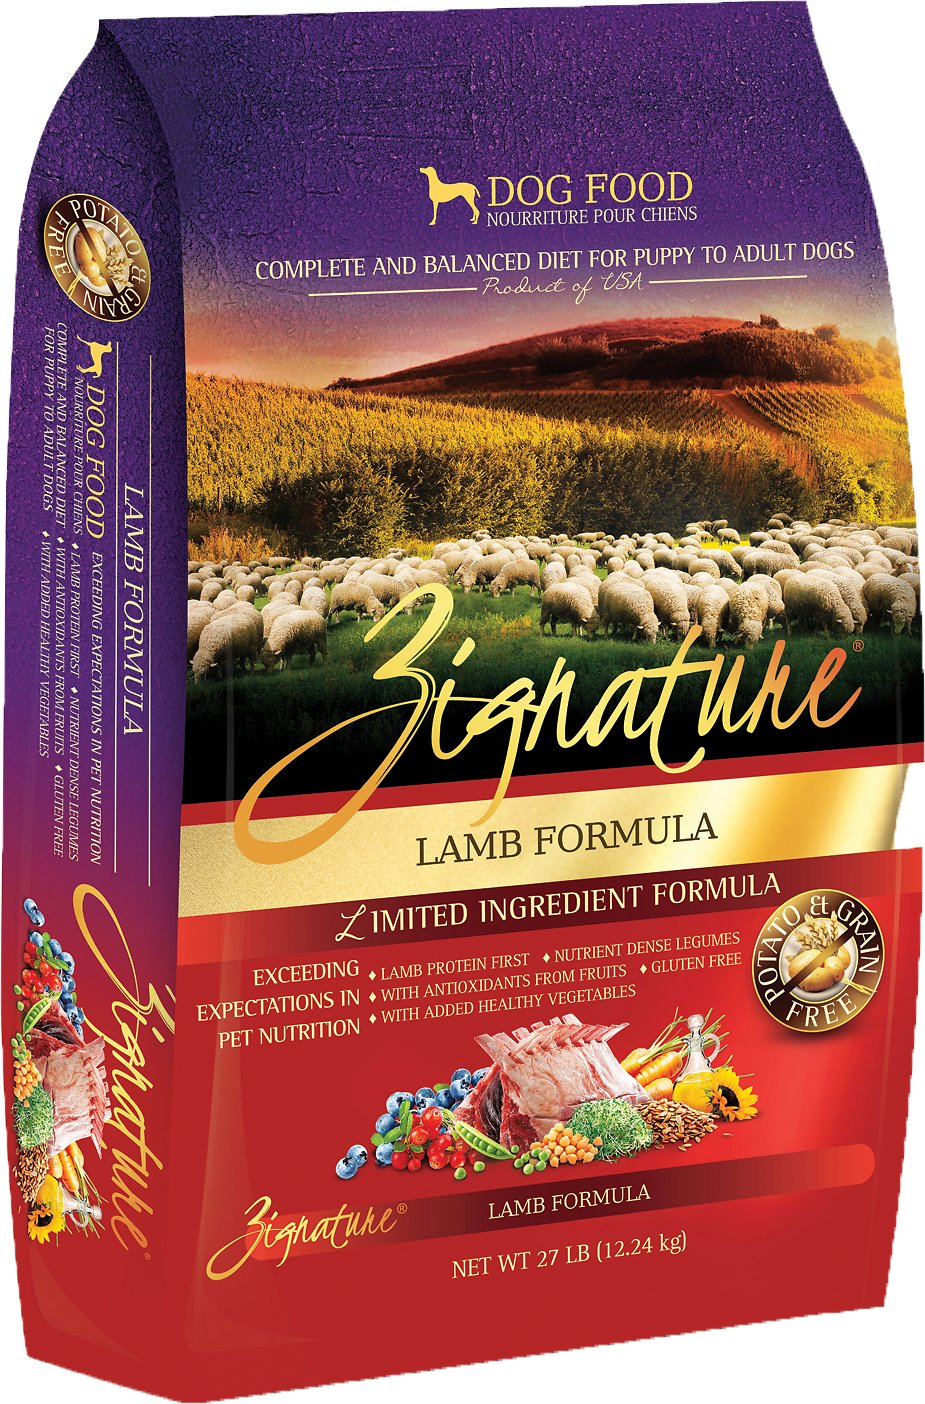 Signature Limited Ingredient Dog Food